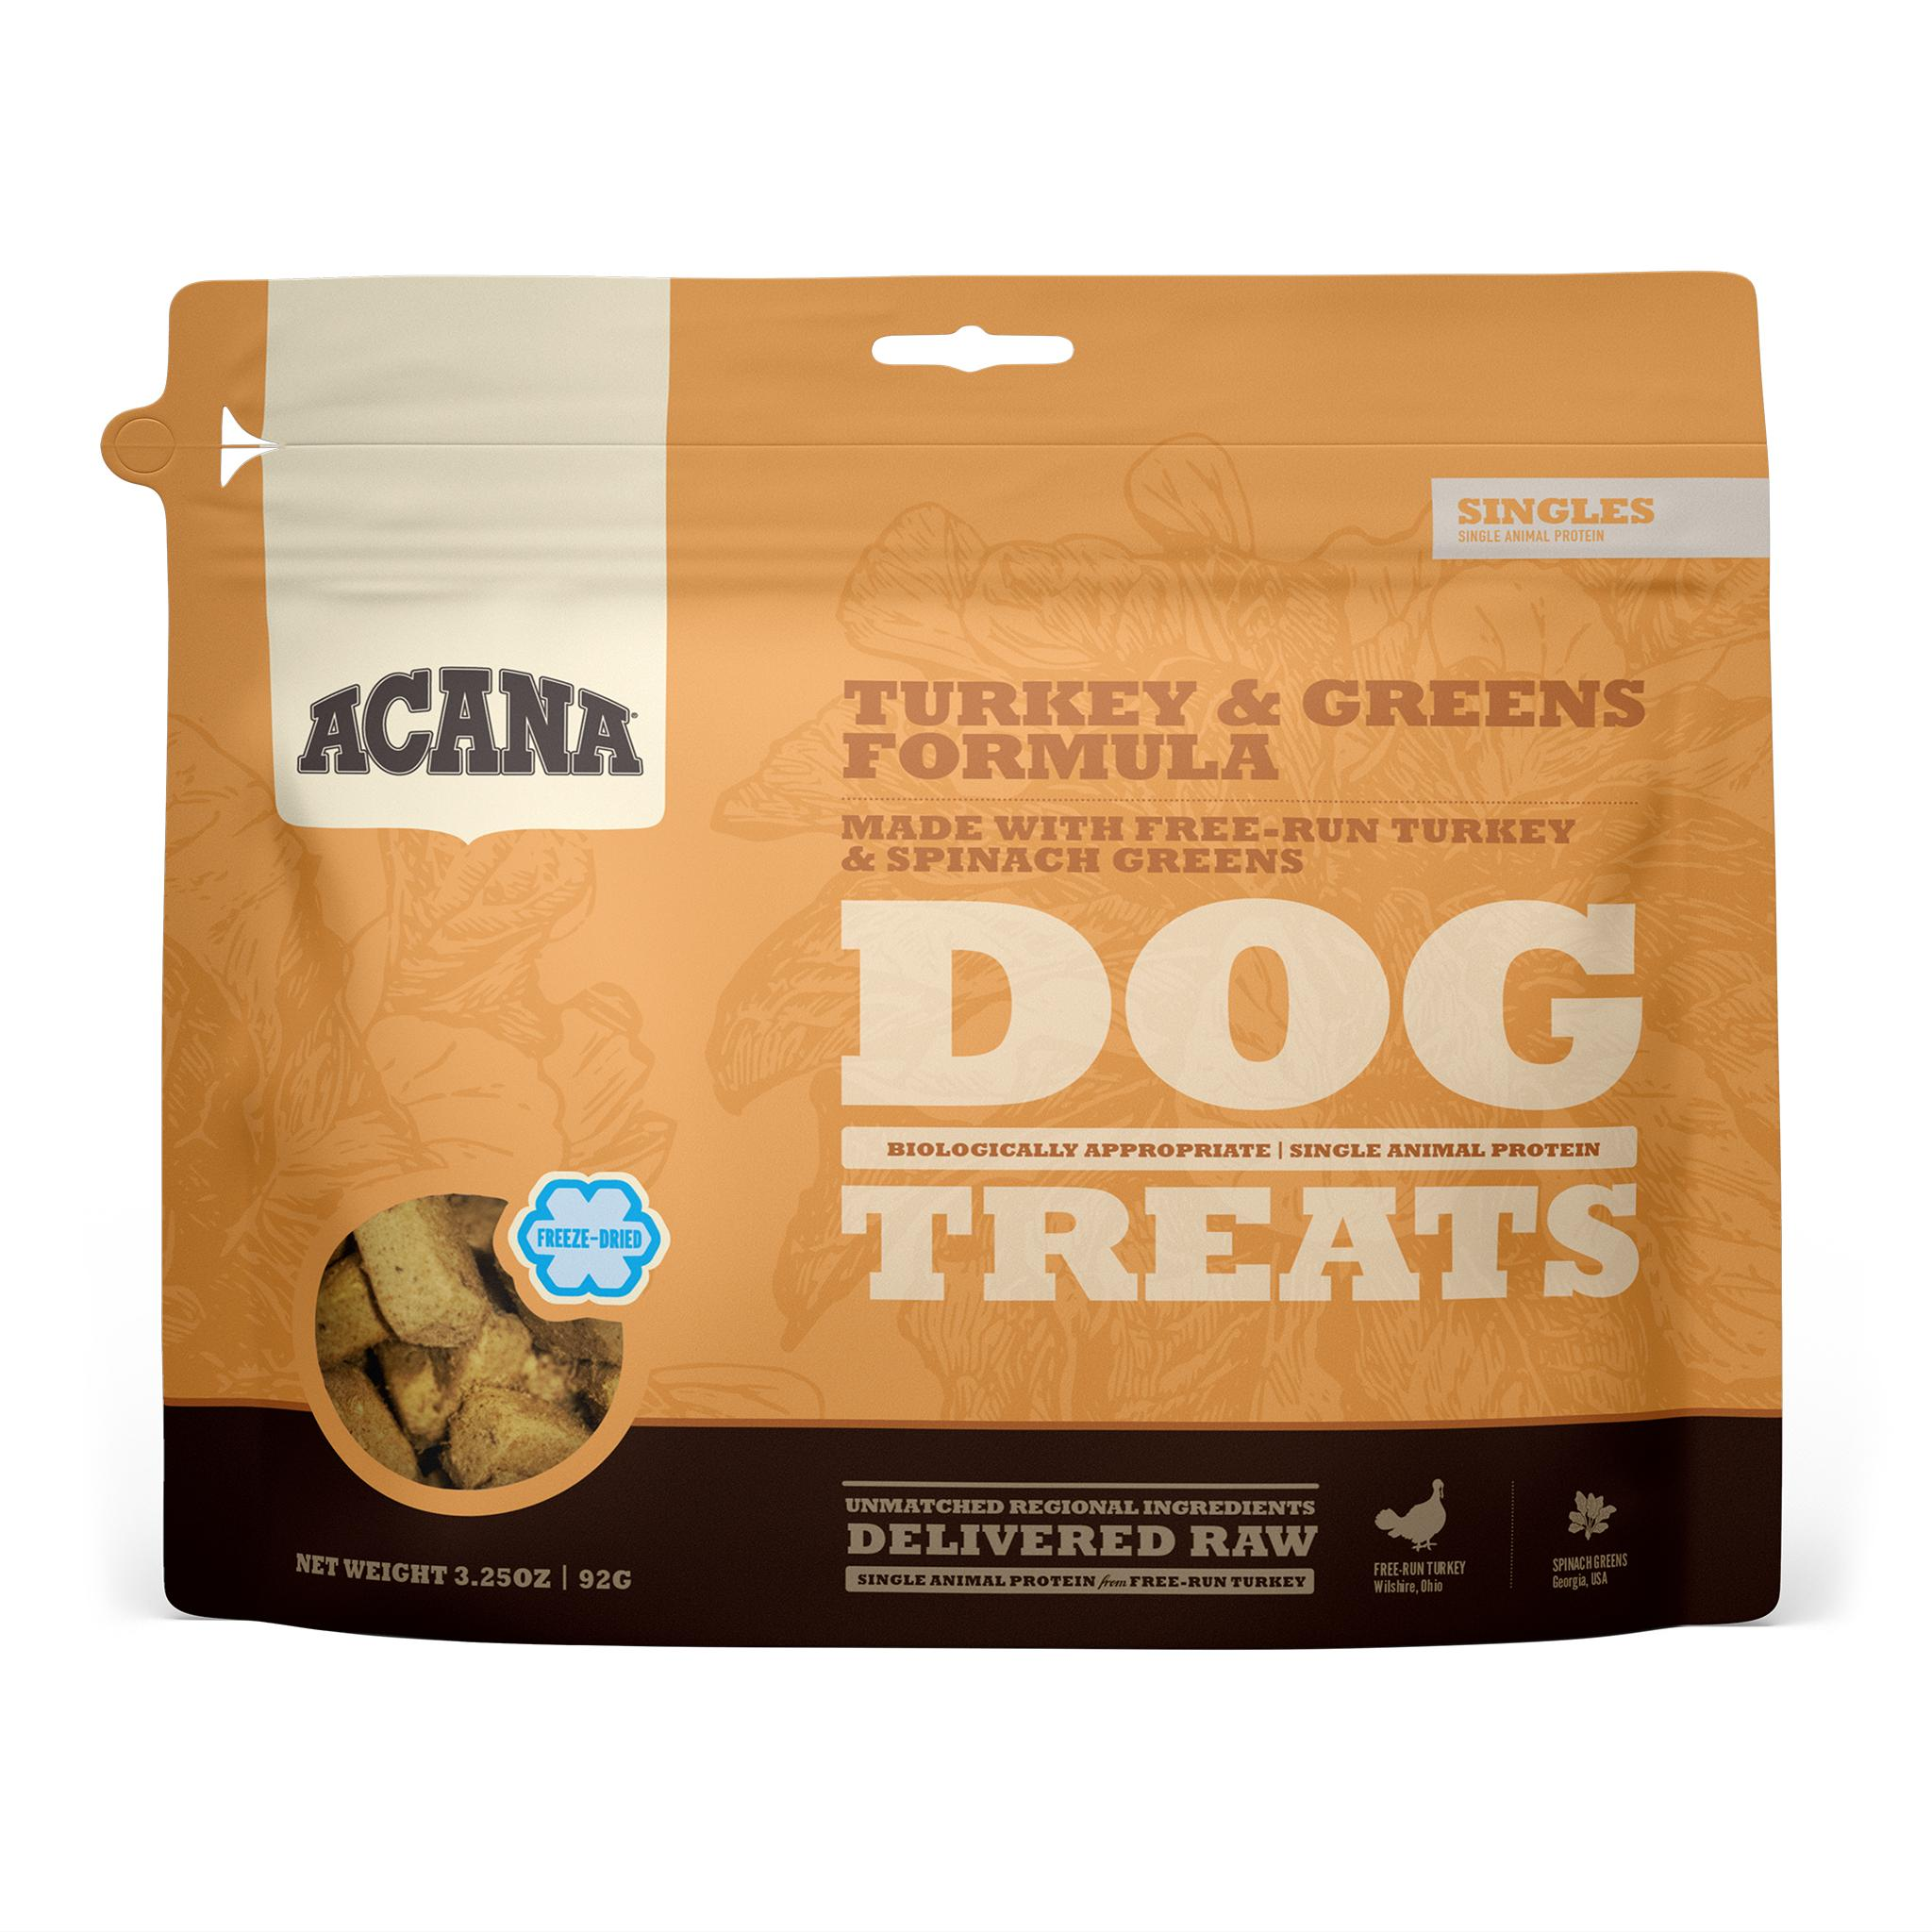 ACANA Singles Turkey & Greens Grain-Free Freeze-Dried Dog Treats, 3.25-oz